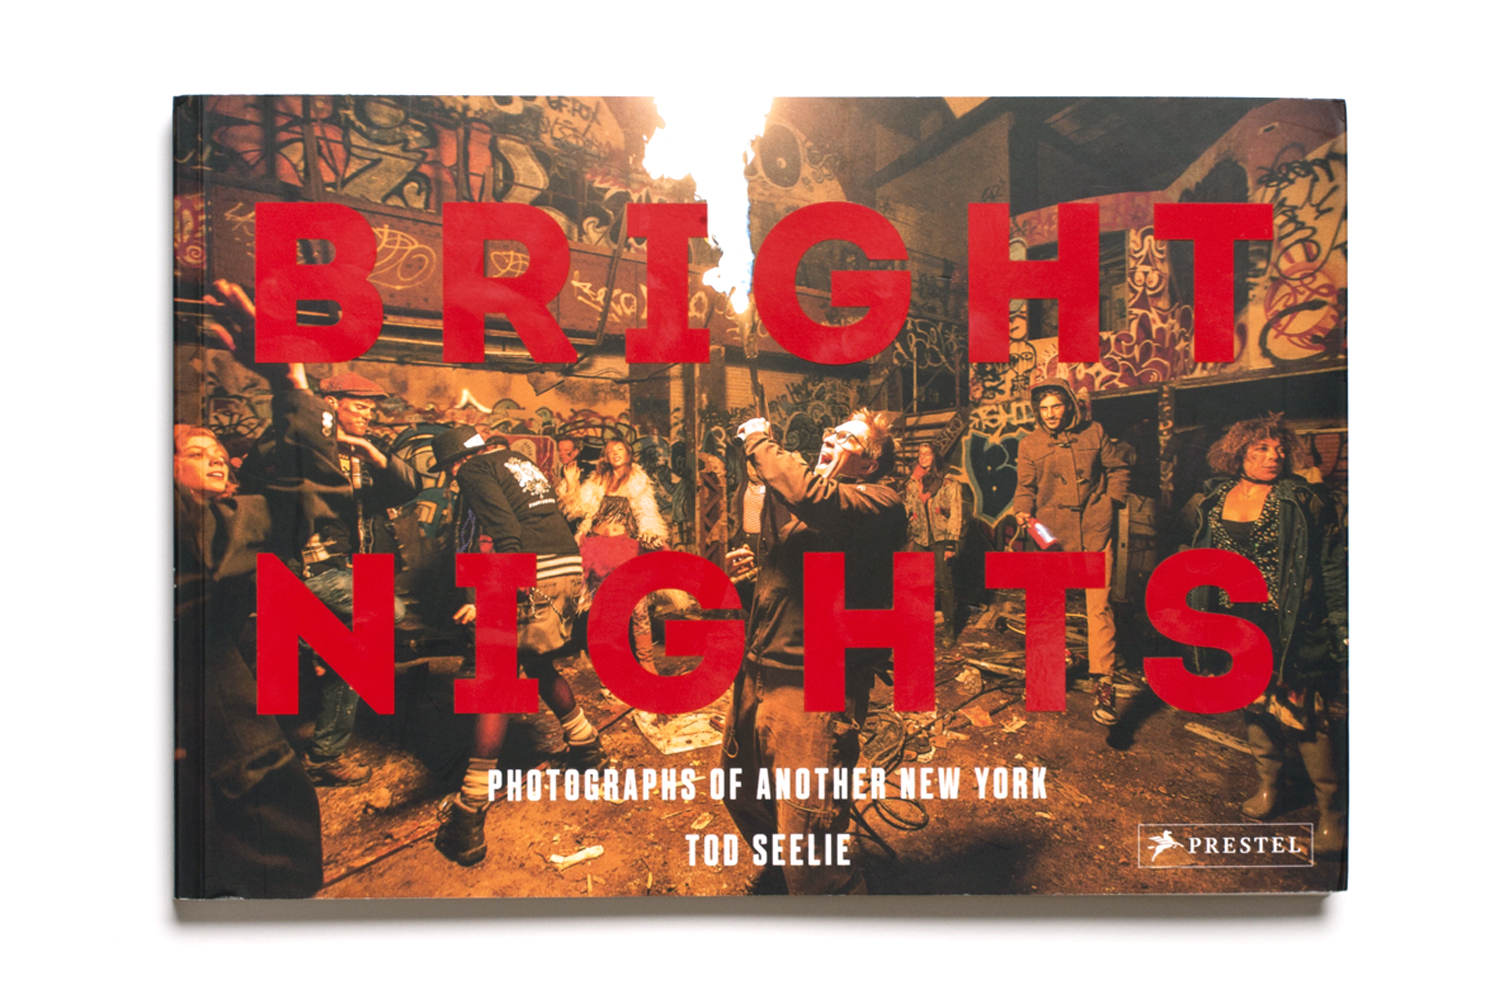 Bright Nights: Photographs of Another New York by Tod Seelie, published by Prestel, selected by Eugene Reznik, writer and photographer, contributor to LightBox.